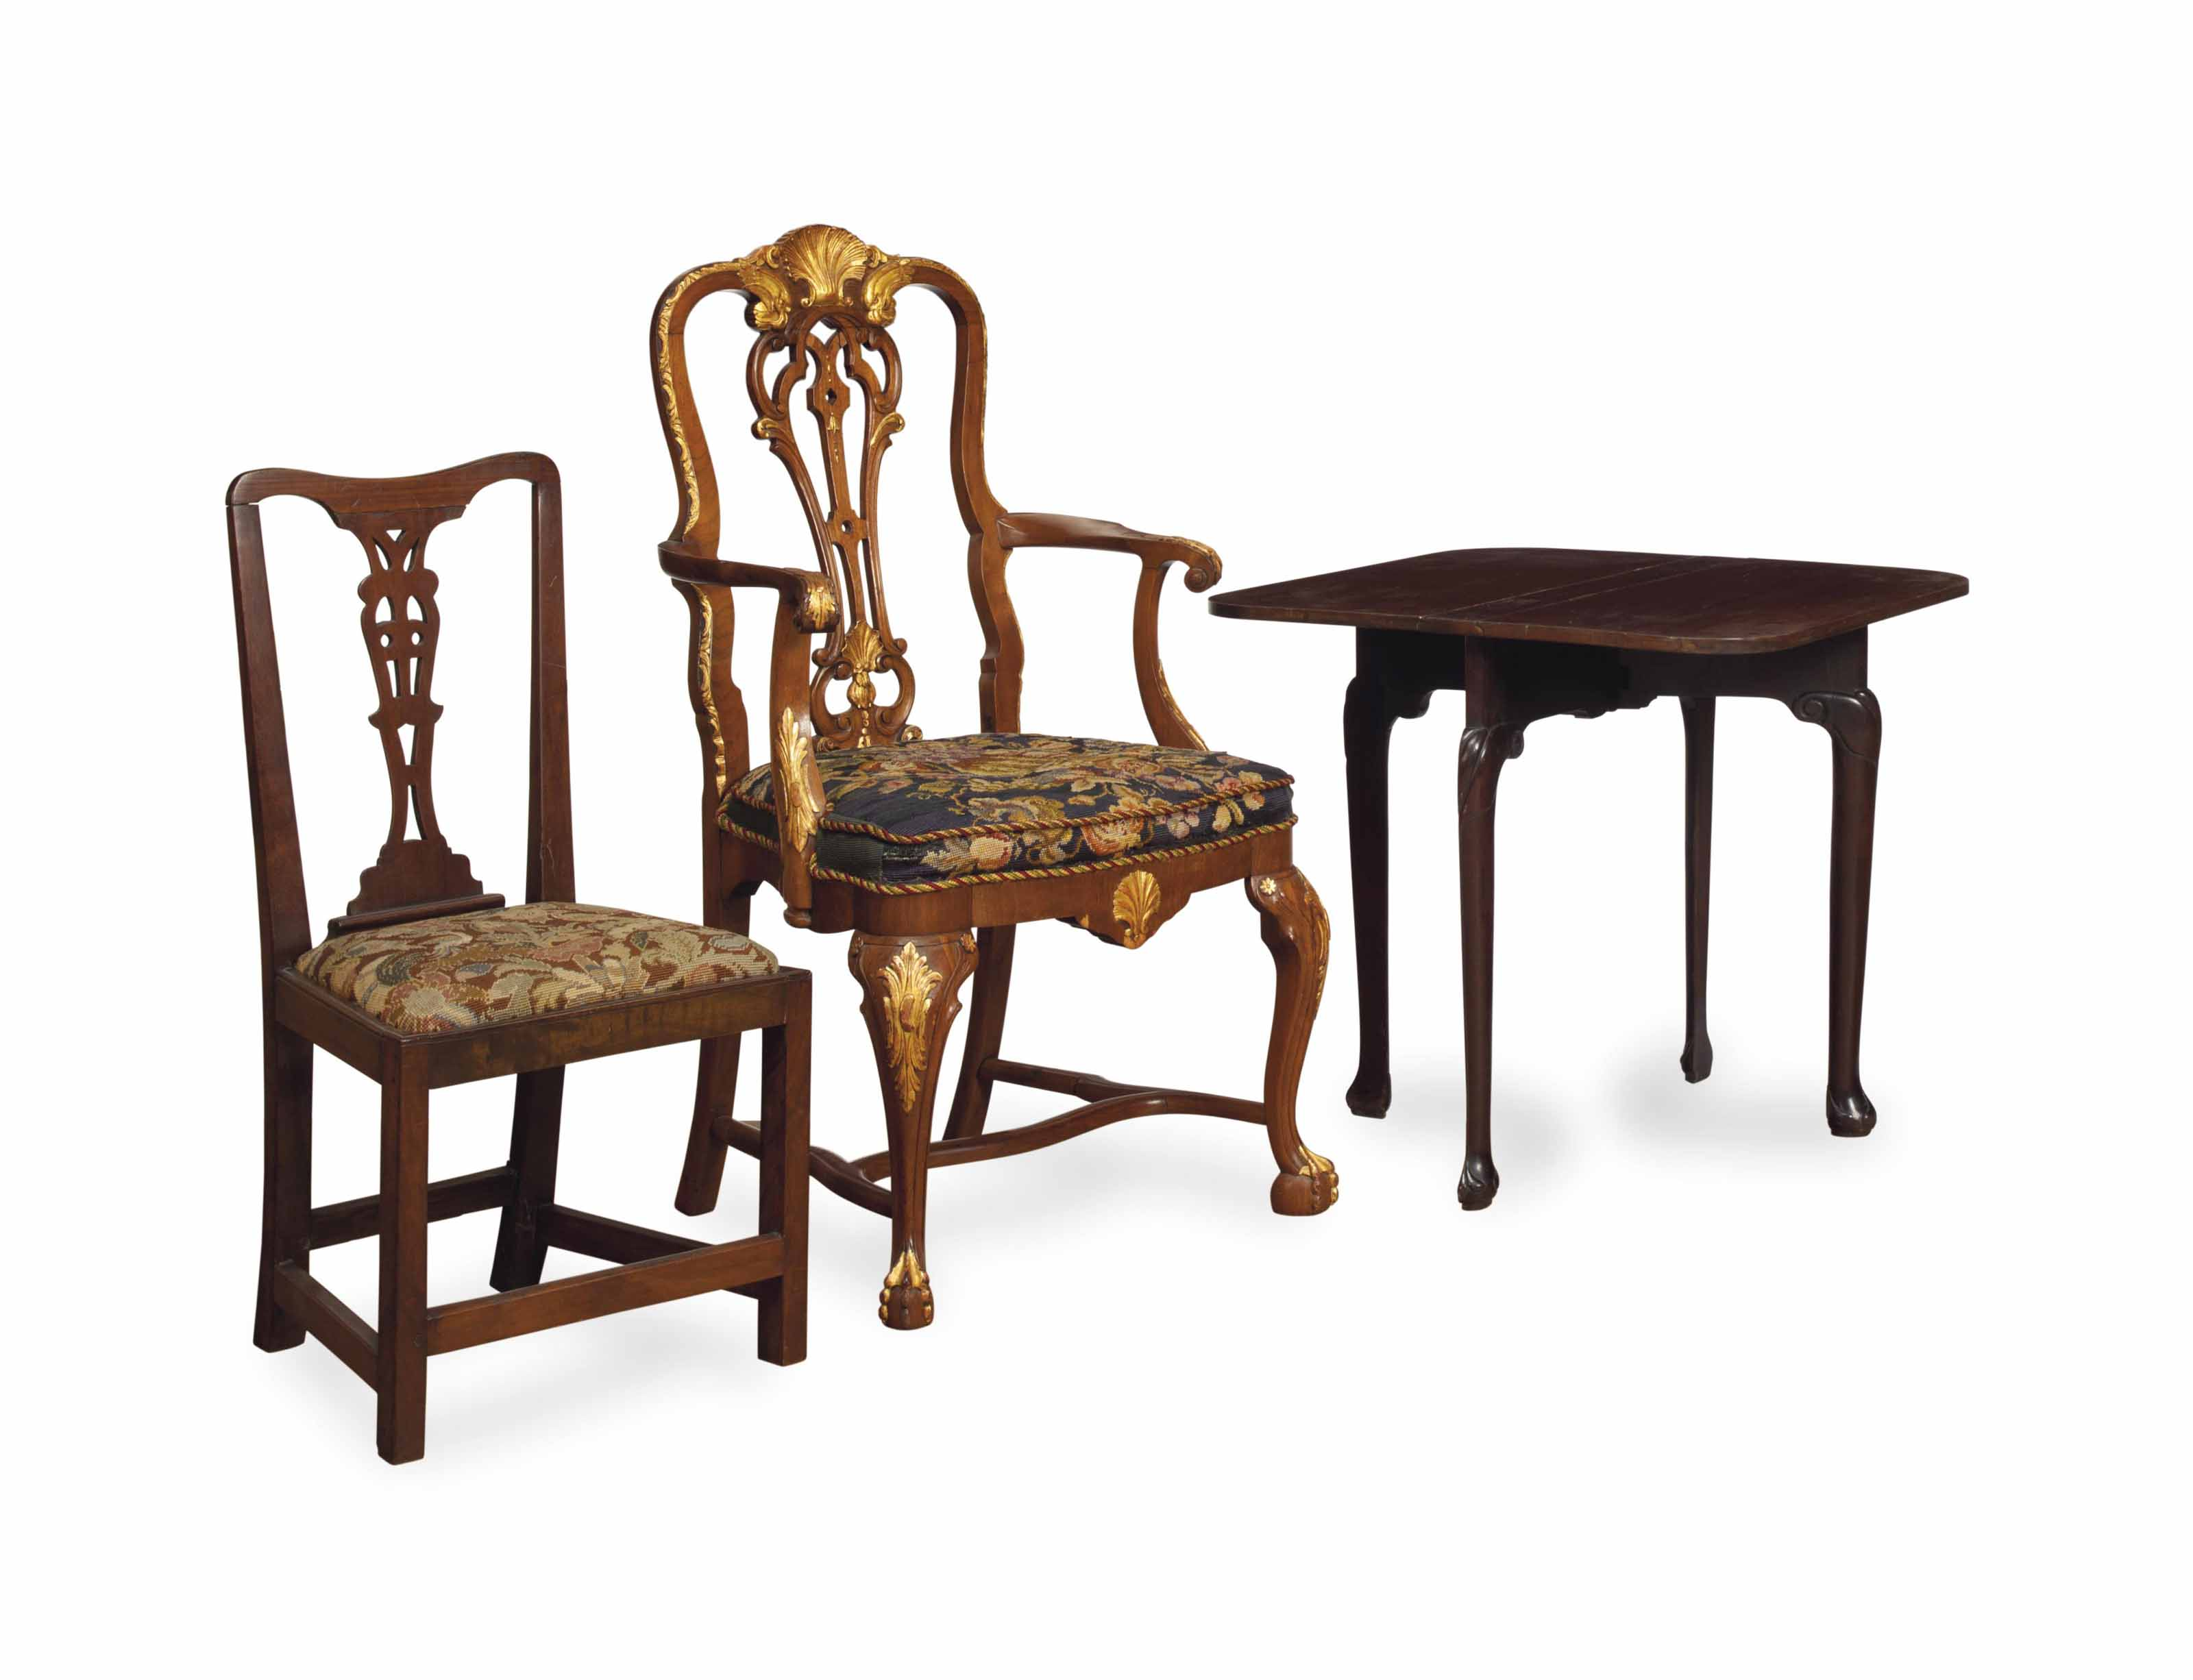 A PAIR OF GEORGE III MAHOGANY SIDE CHAIRS,